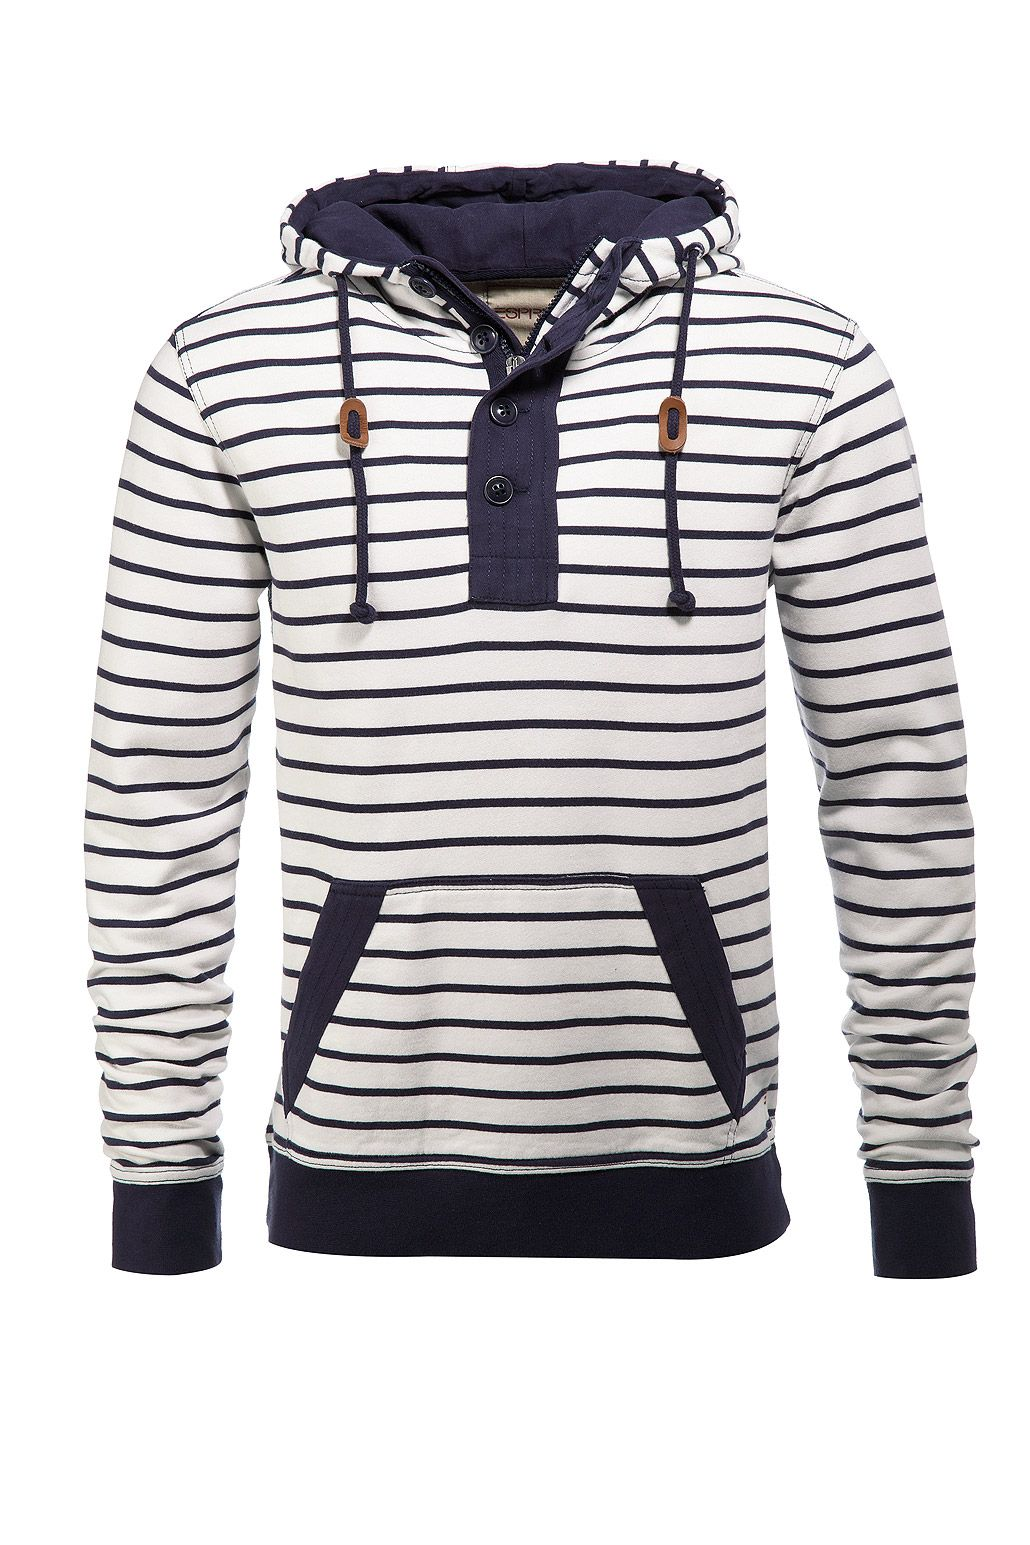 f13d6ad1f5 Esprit Black White Striped Hoodie Online Shop Kleidung